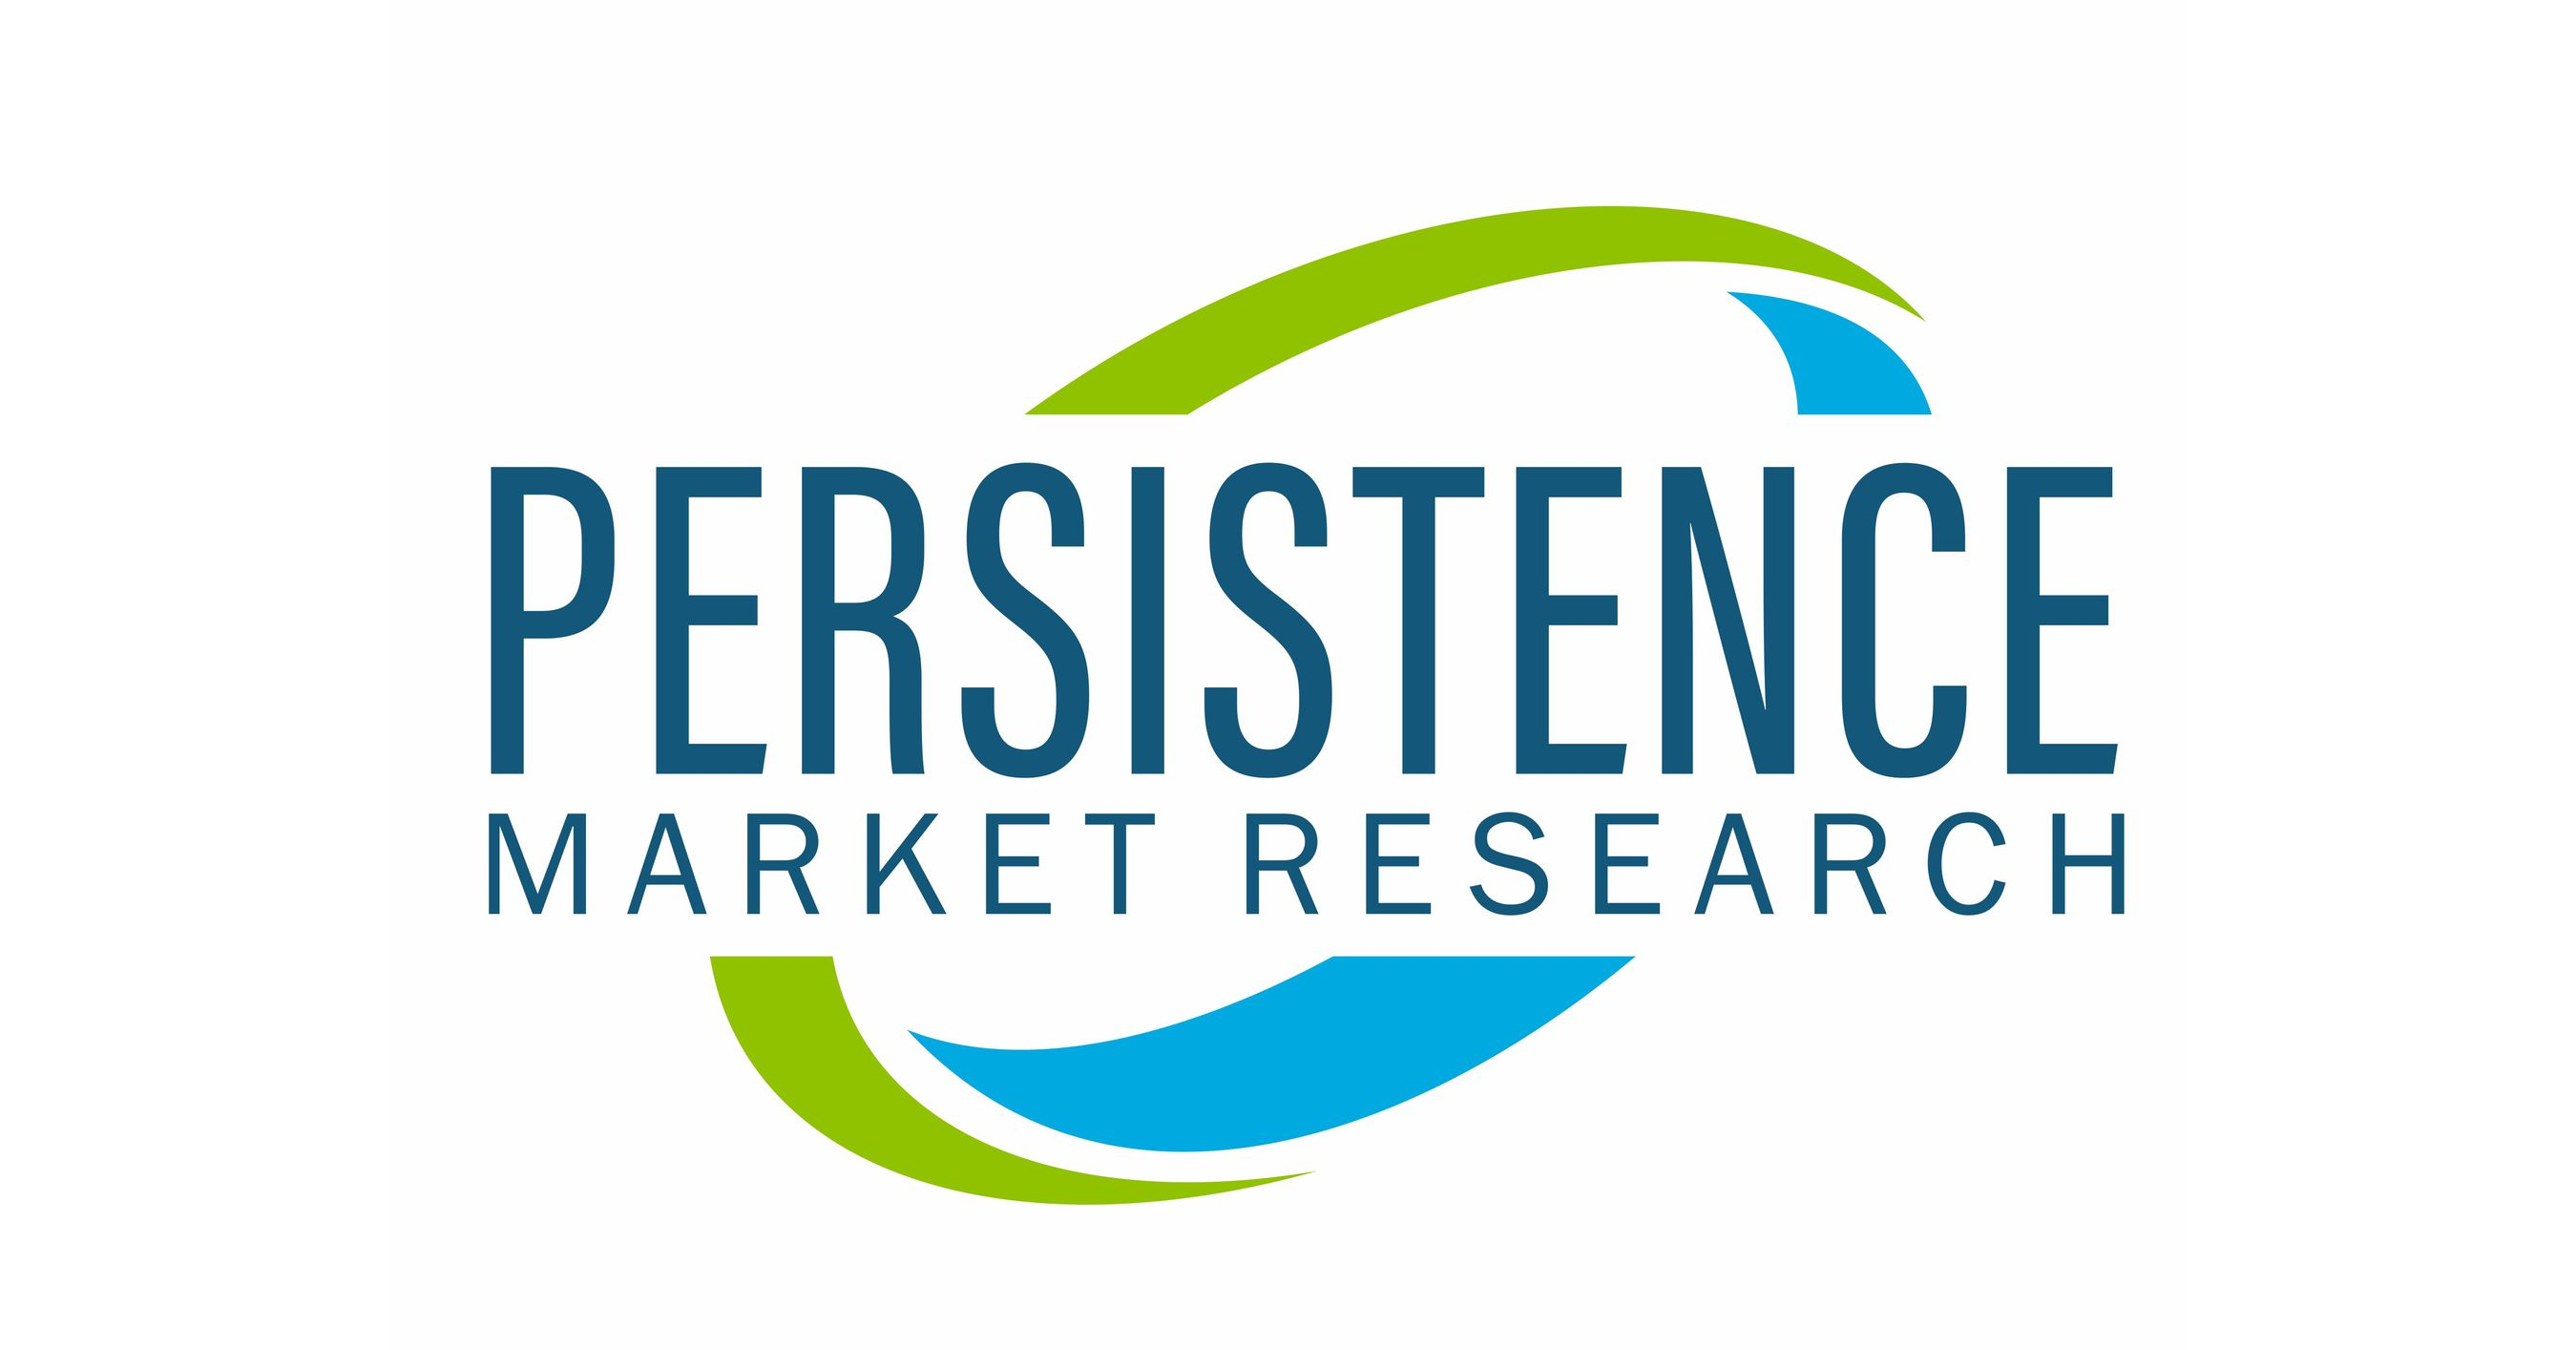 Water Filter Market to close in on US$ 25 Bn by 2030, Supported by Increasing Demand for High-quality Drinking Water, Finds PERSISTENCE MARKET RESEARCH - PRNewswire